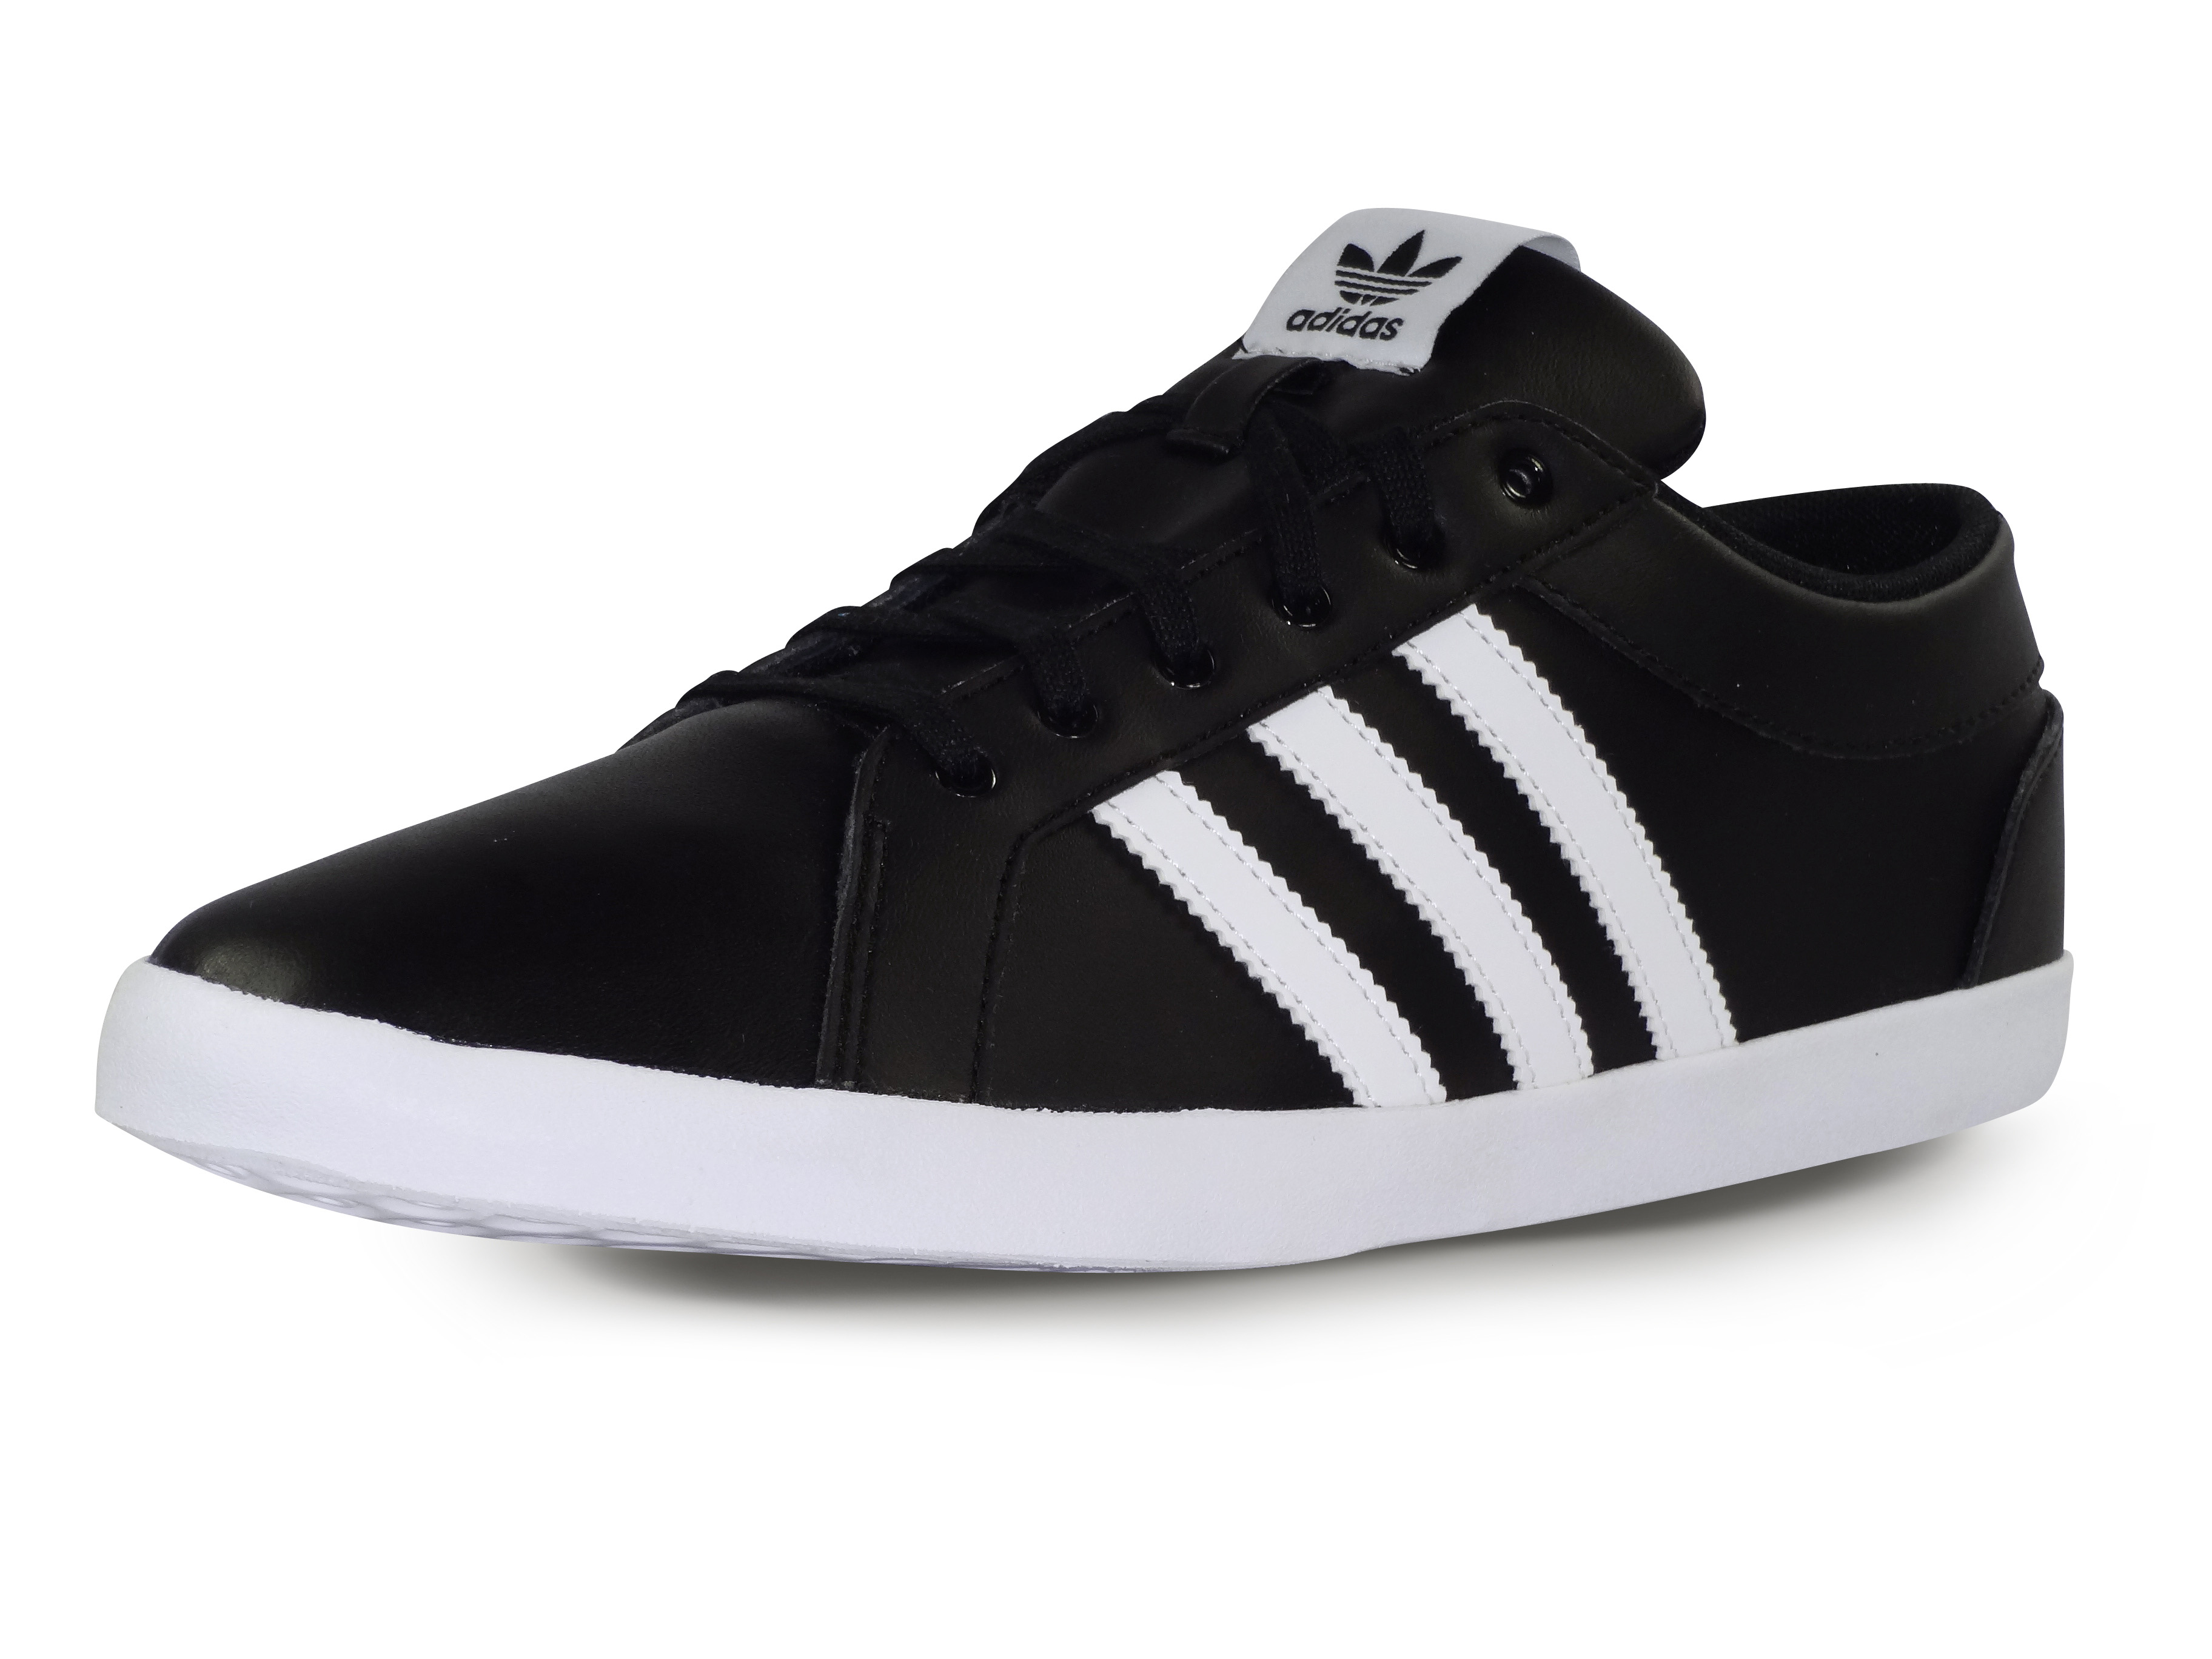 Basse Adidas Basse Basse Chaussure Homme Adidas Chaussure Chaussure Homme Homme Adidas 4q3ARL5j